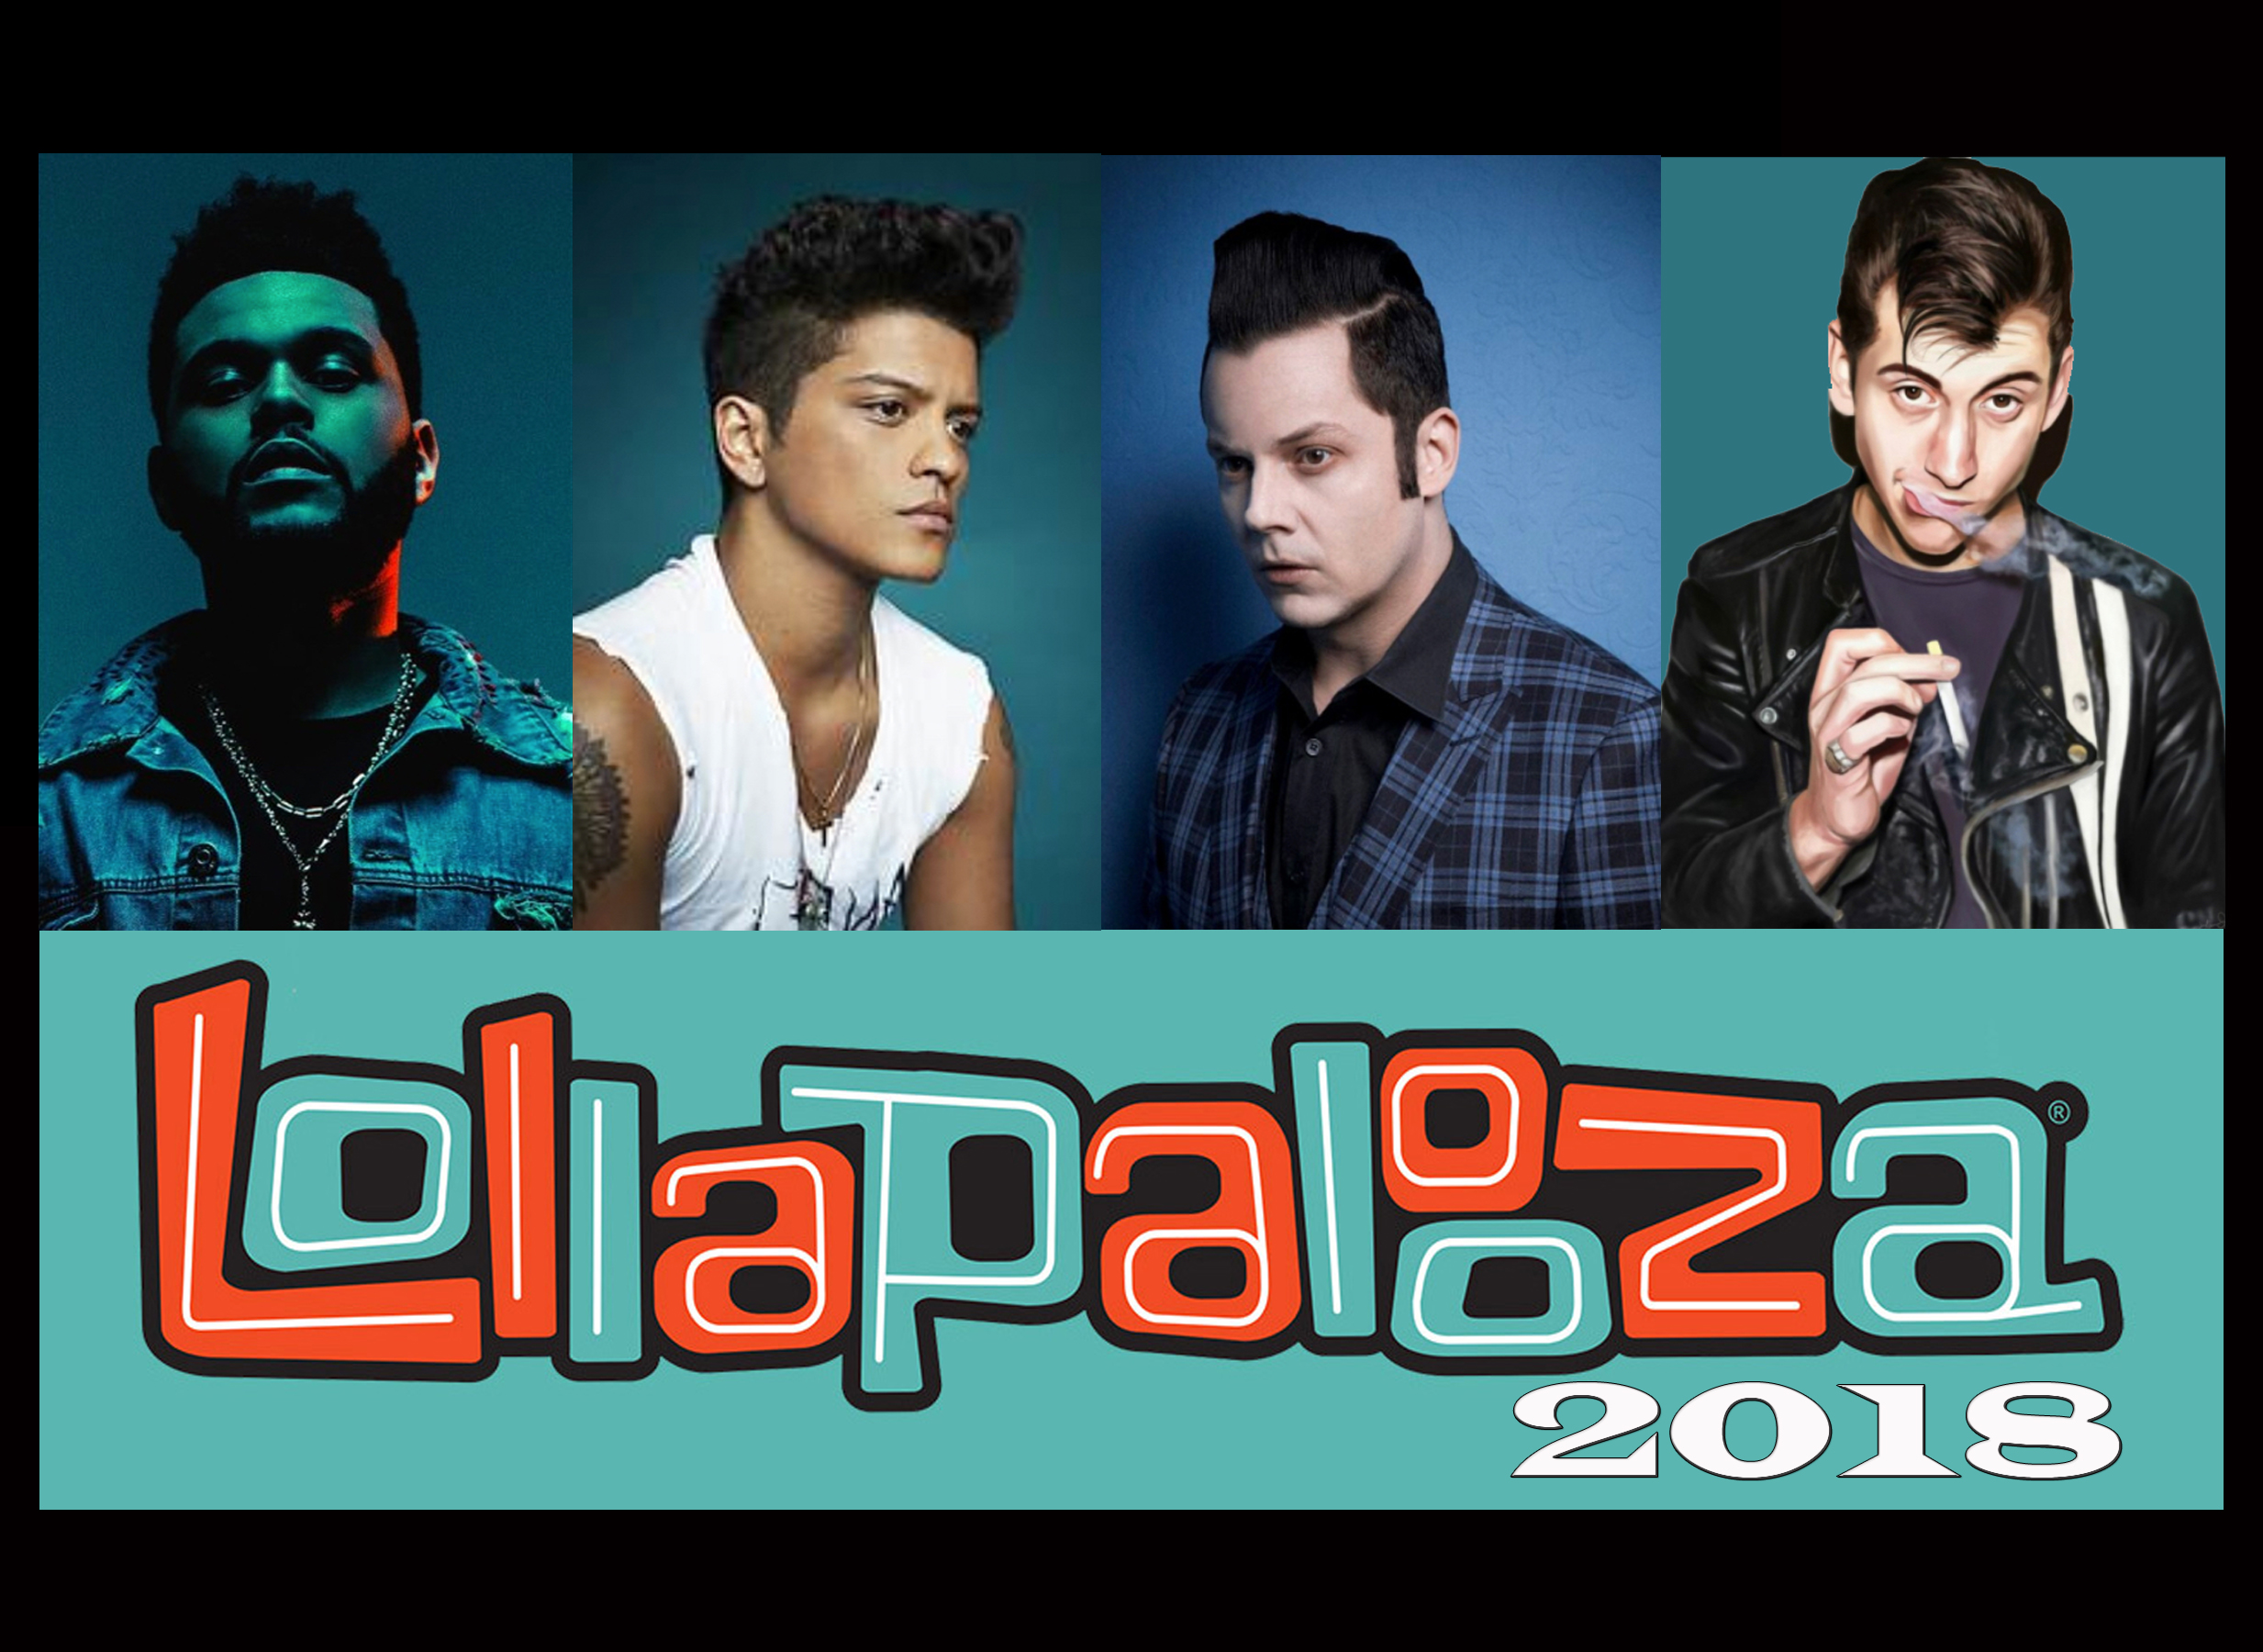 Lollapallooza Announce The 2018 Line Up For Grant Park's Largest Outdoor Music Festival